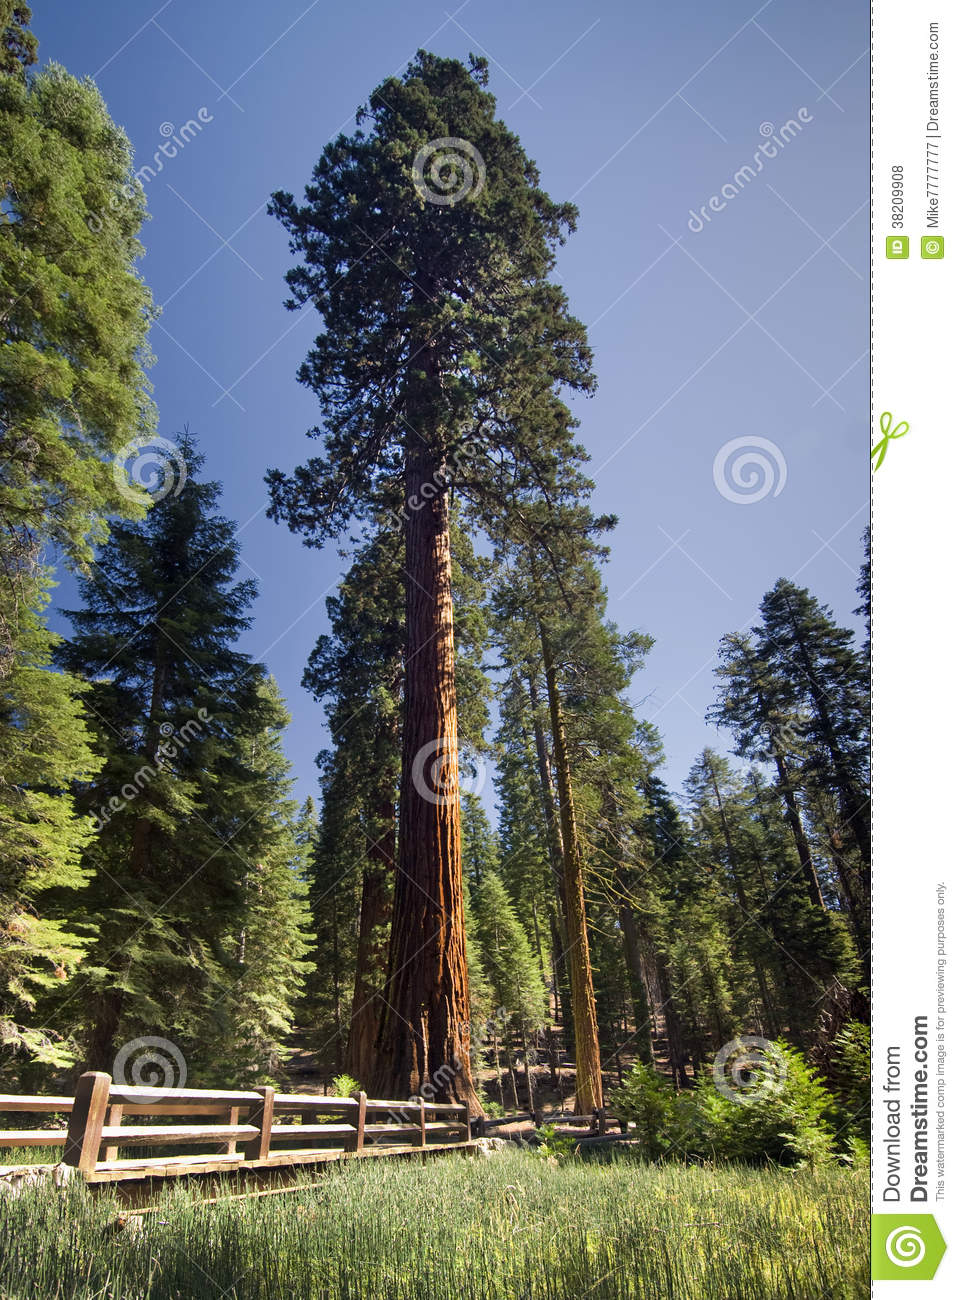 Giant Sequoia Tree Mariposa Grove Yosemite National Park